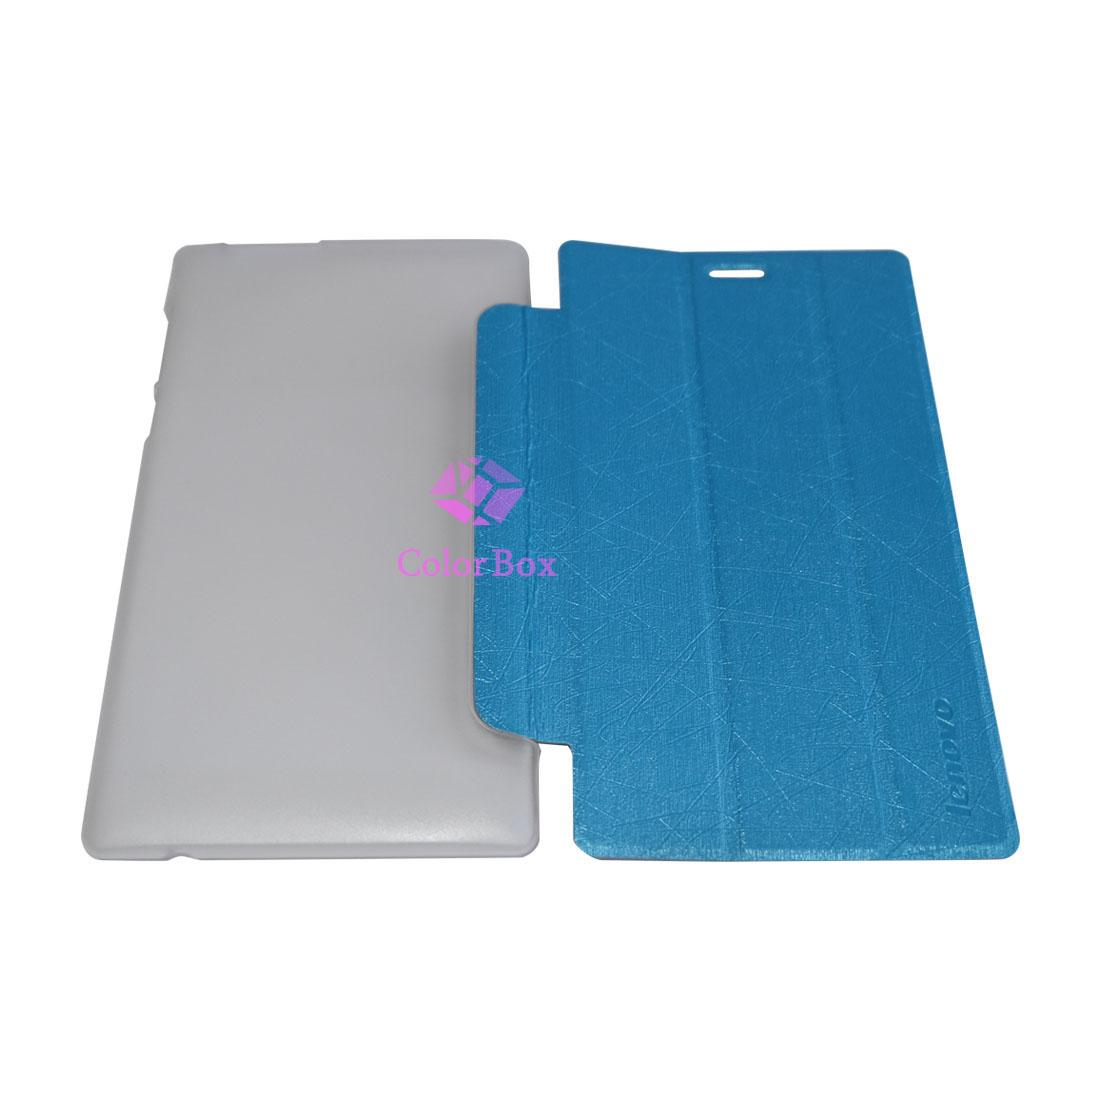 Case Flip Leather Cover Lenovo Tab 2 A7-10 / Flipcover Lenovo Tab 2 A7-10 / Sarung Tablet / Dompet Tablet - Biru Muda